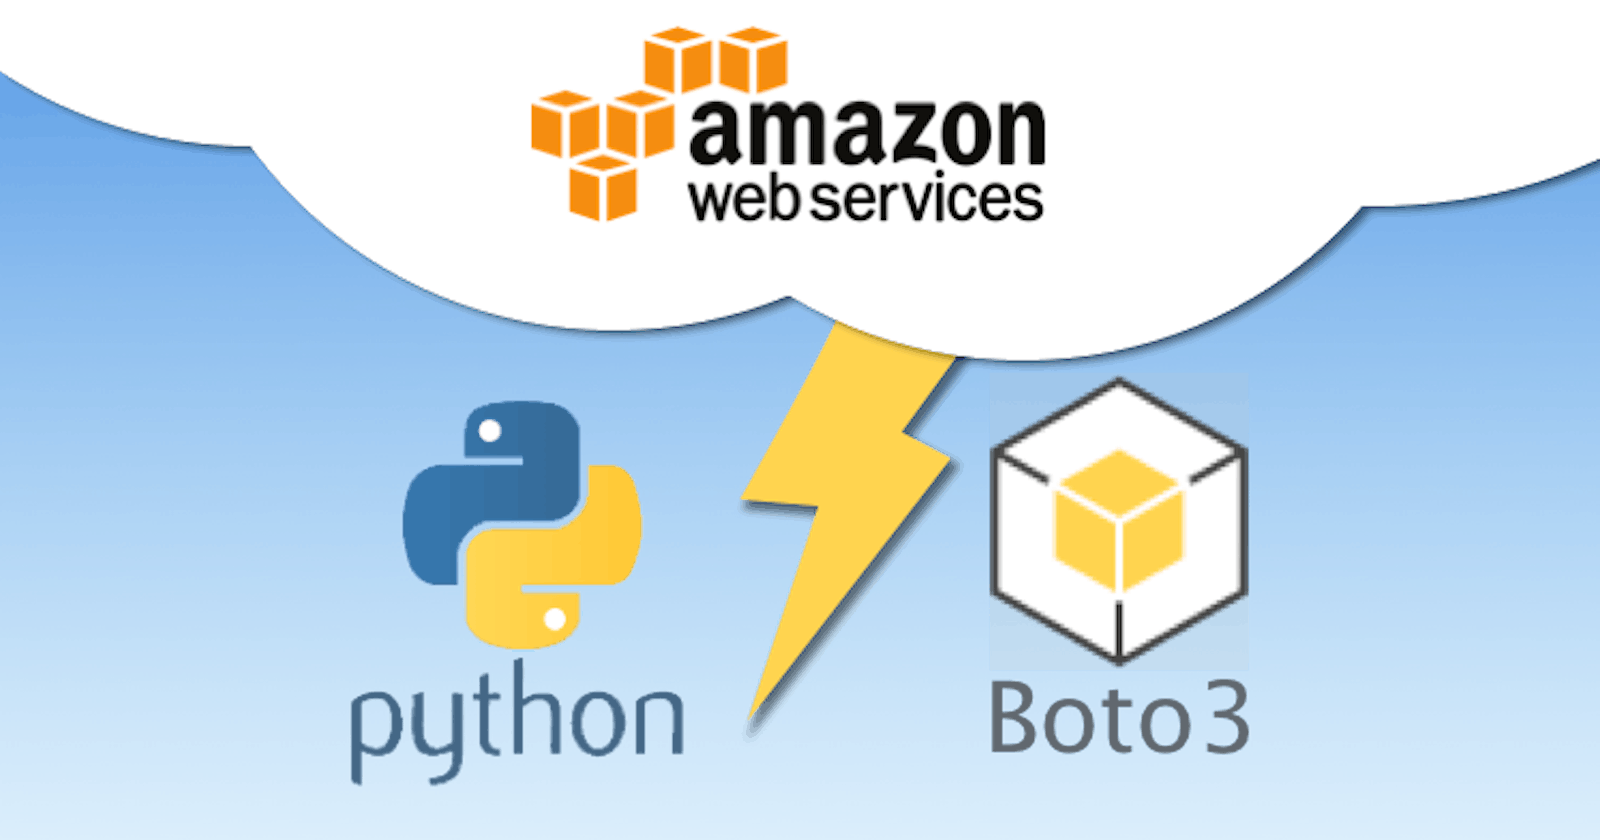 Creating AWS resources using Boto3 for deploying Django project